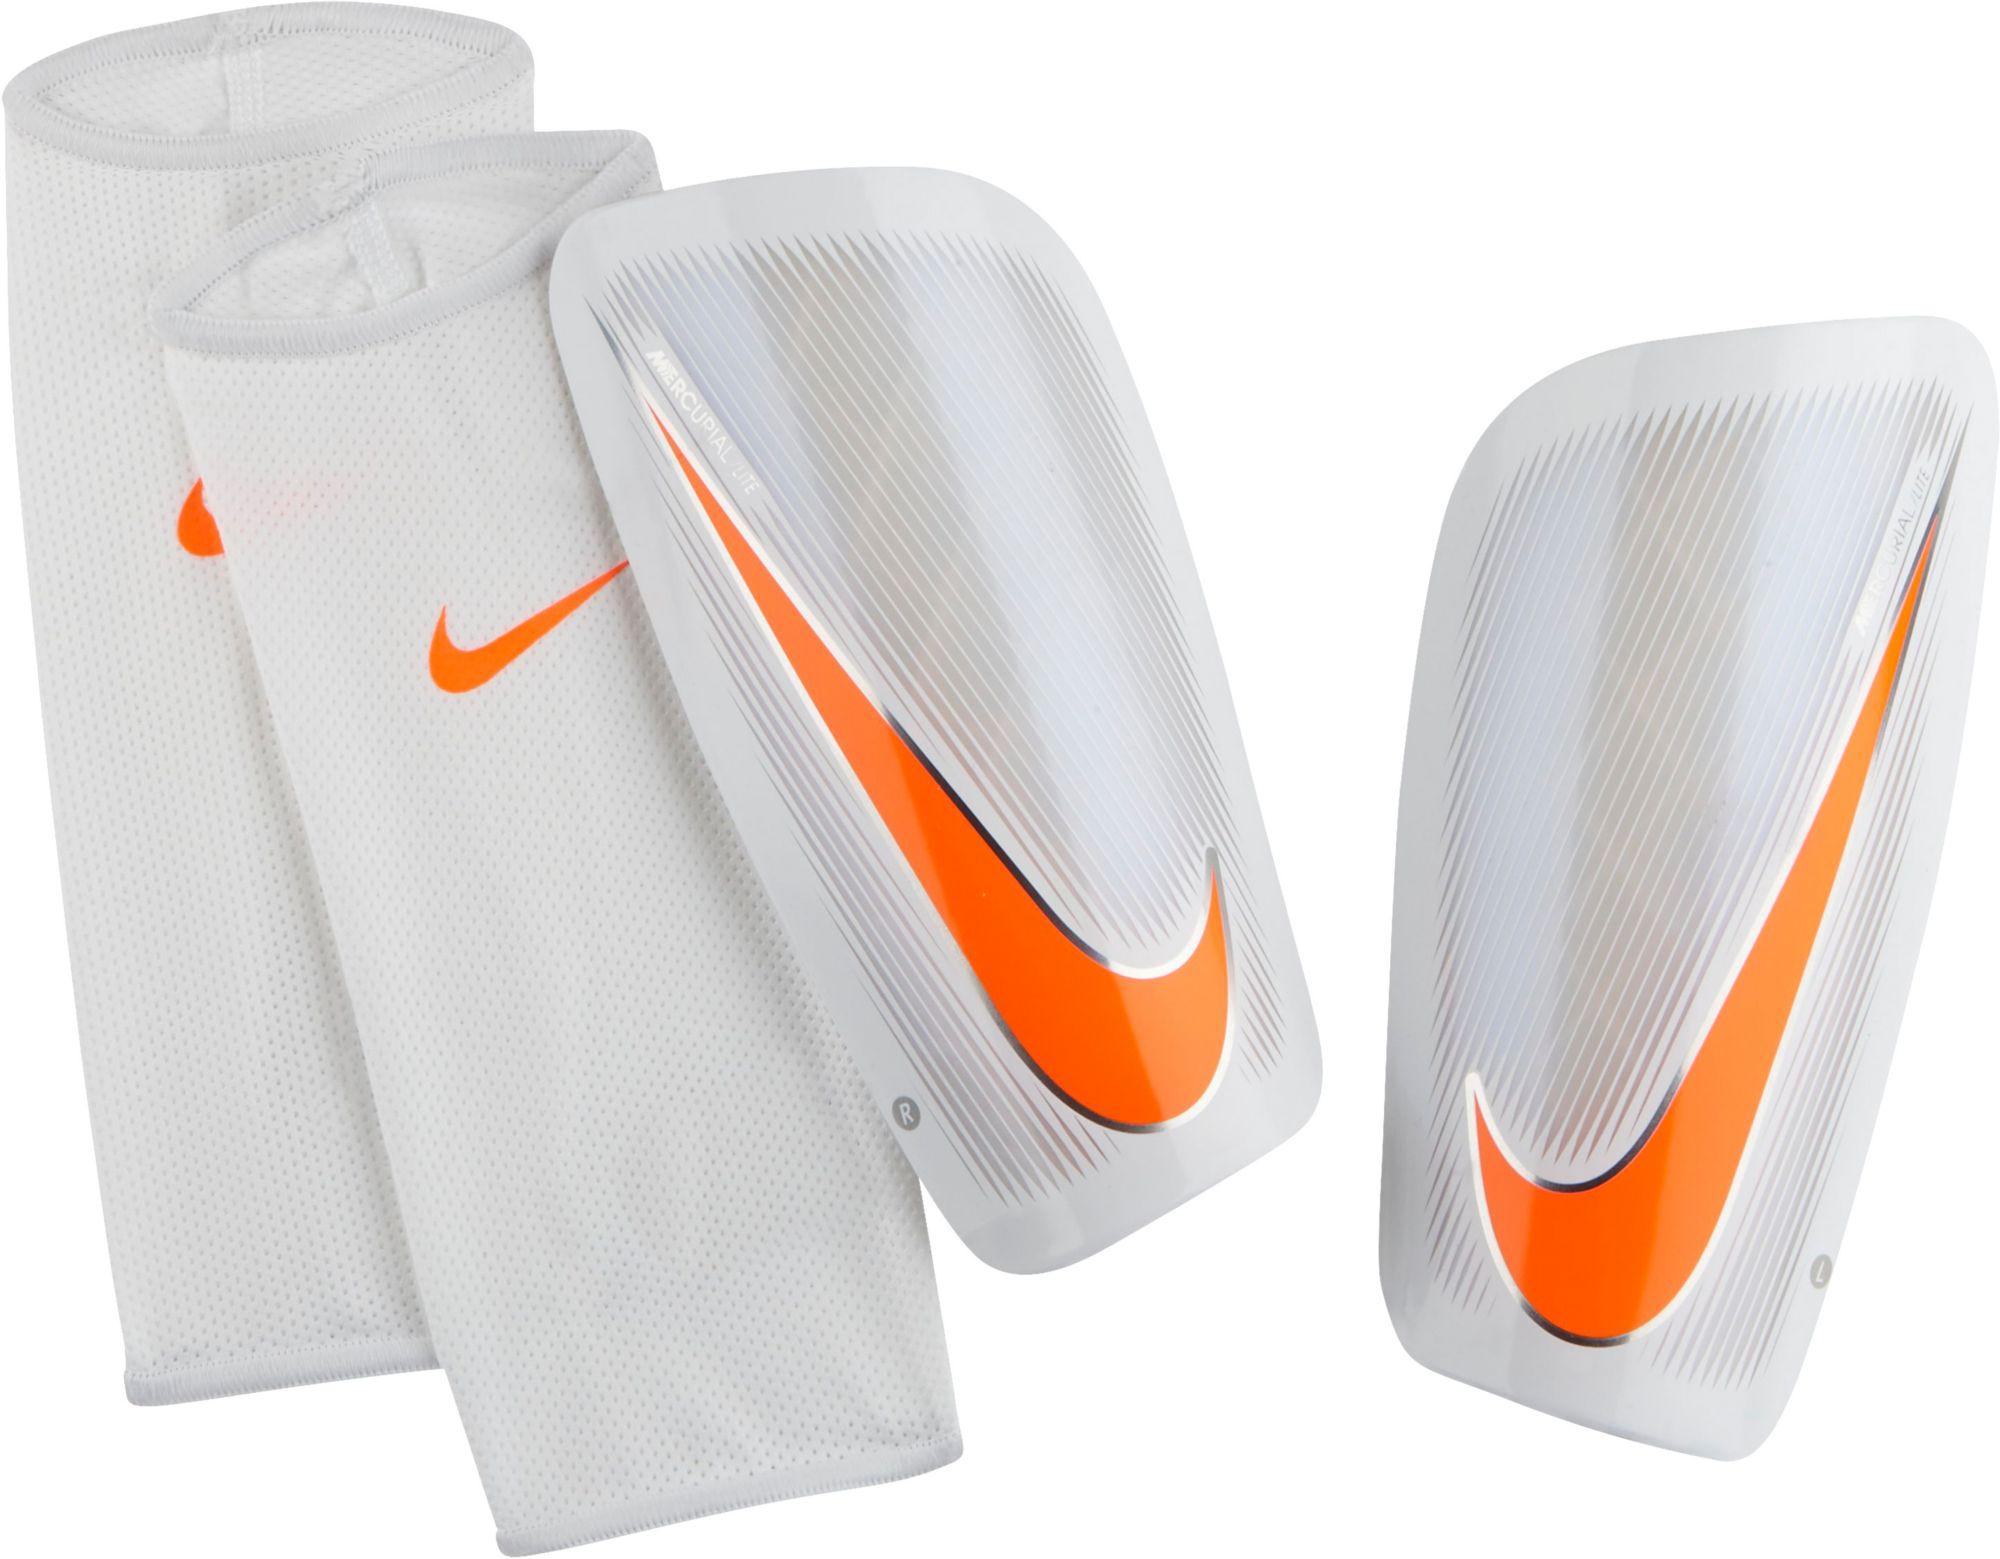 new products 1a219 f3db2 Nike Adult Mercurial Lite Soccer Shin Guards, White